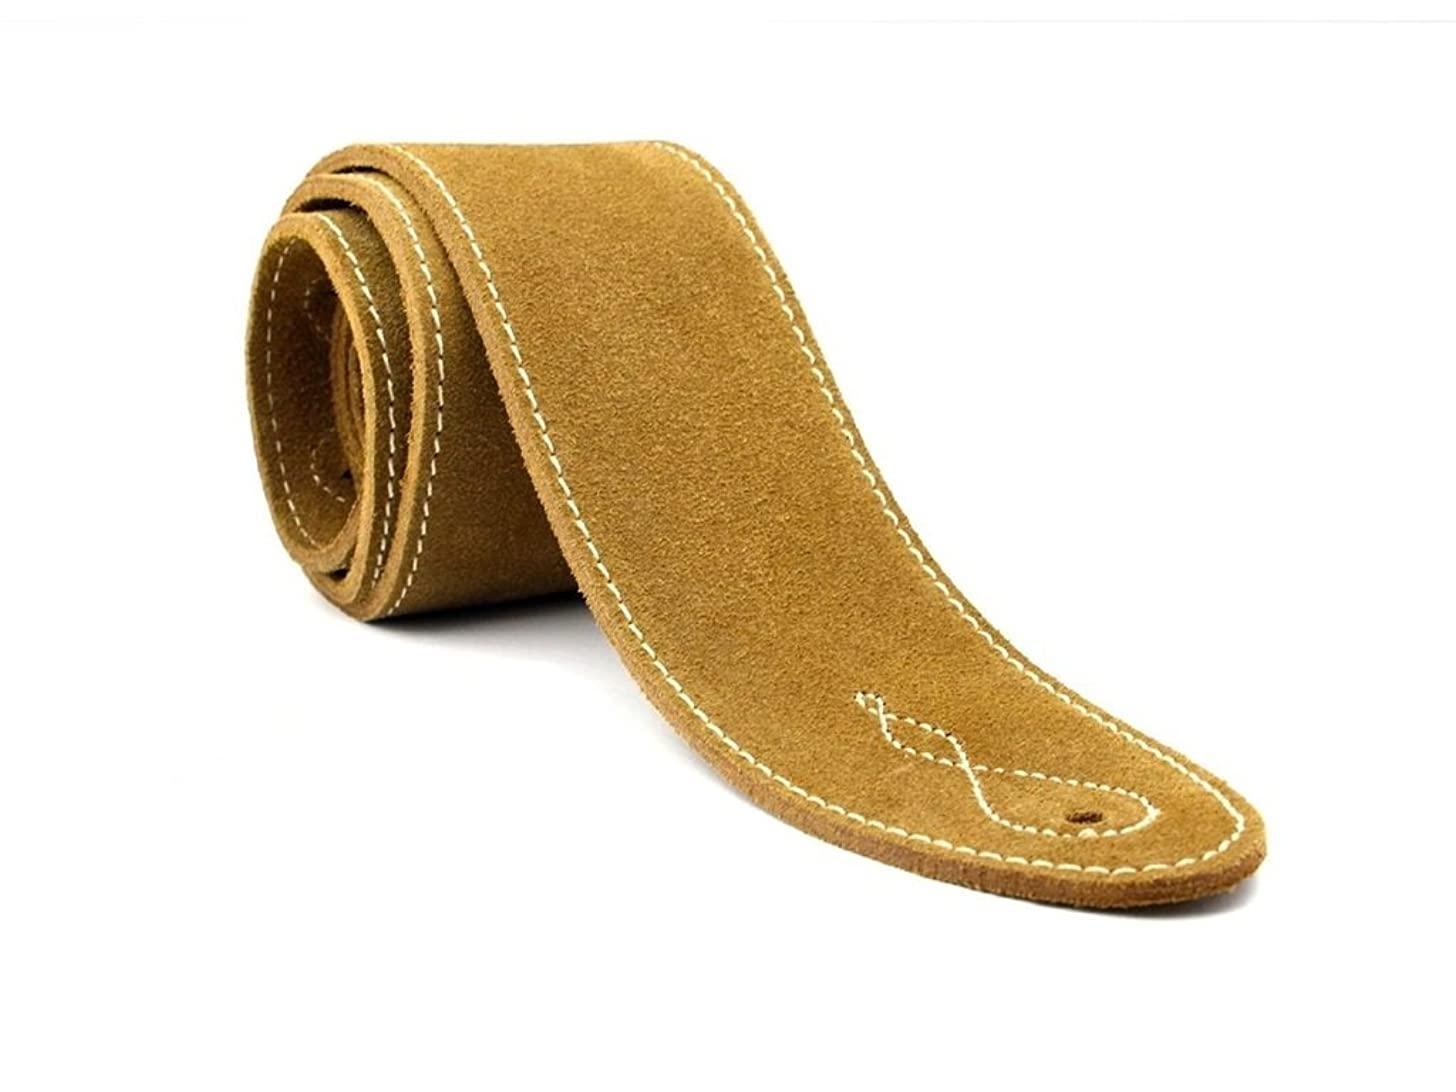 LeatherGraft Natural Beige Genuine Suede Style 2.5 Inch Wide Guitar Strap - Suitable for All Electric, Acoustic, Classical & Bass Guitars